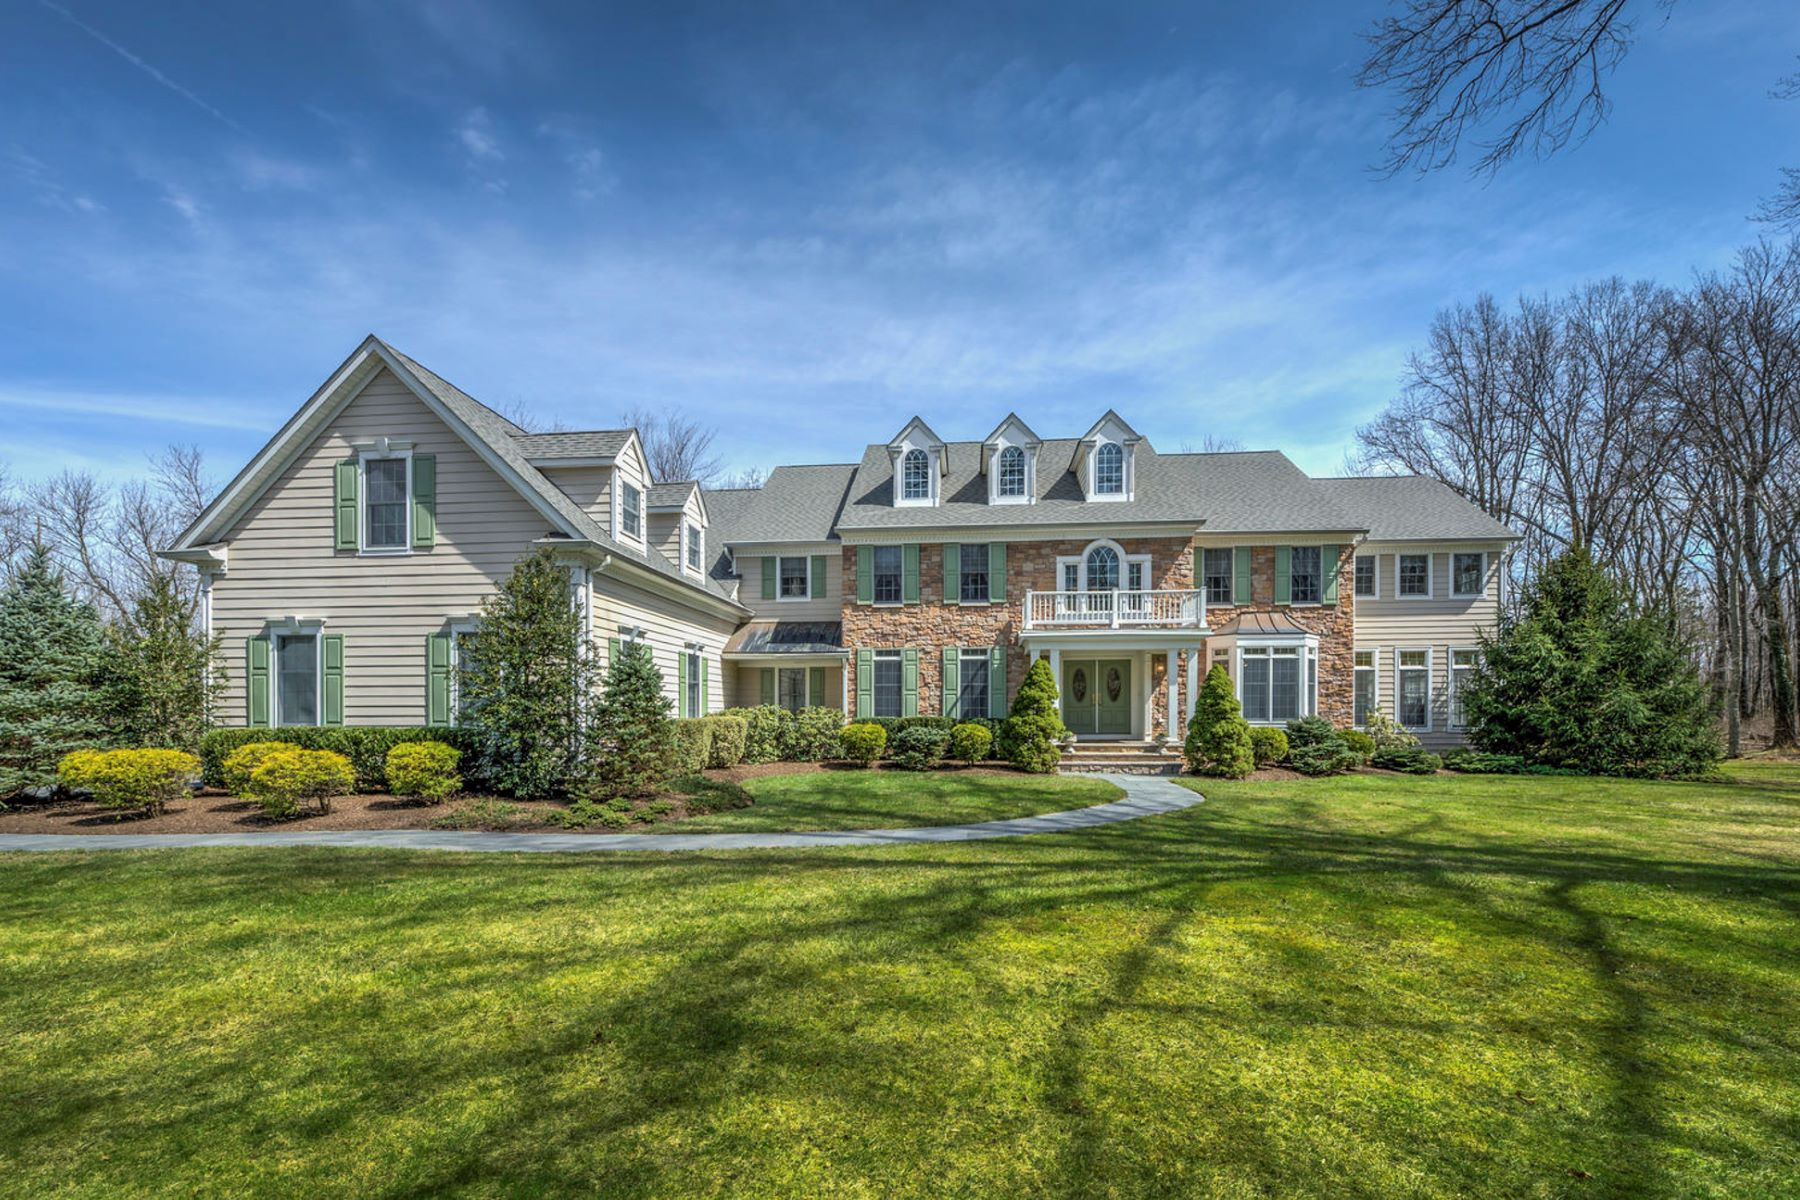 Single Family Homes for Sale at The Best Of Everyday Life 30 Birchwood Drive, Princeton, New Jersey 08540 United States